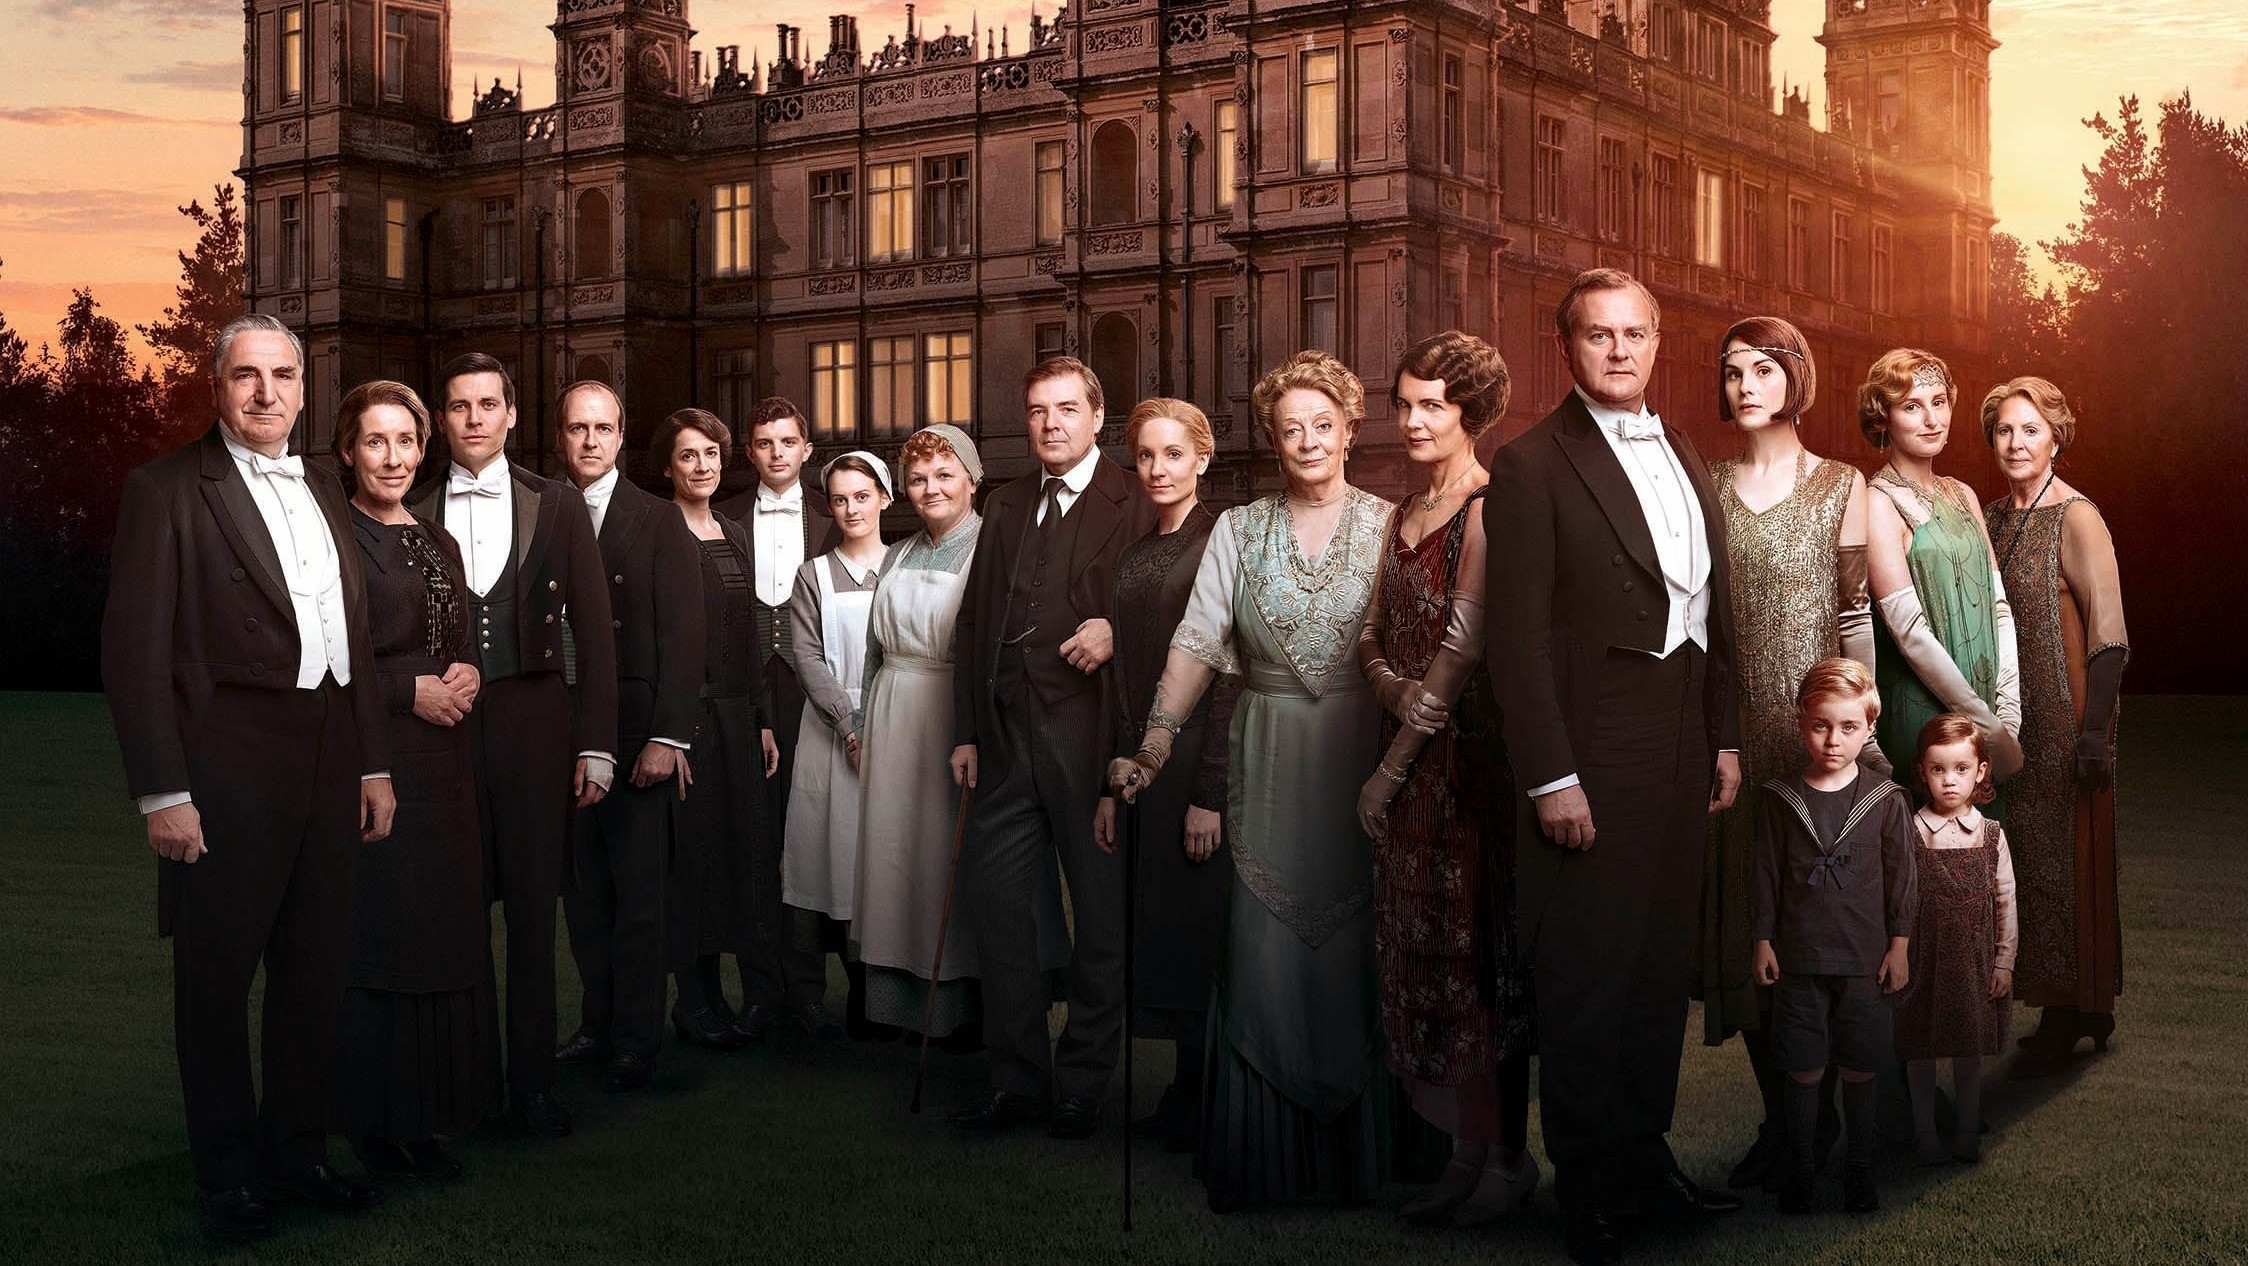 Why Is Downton Abbey So Popular?